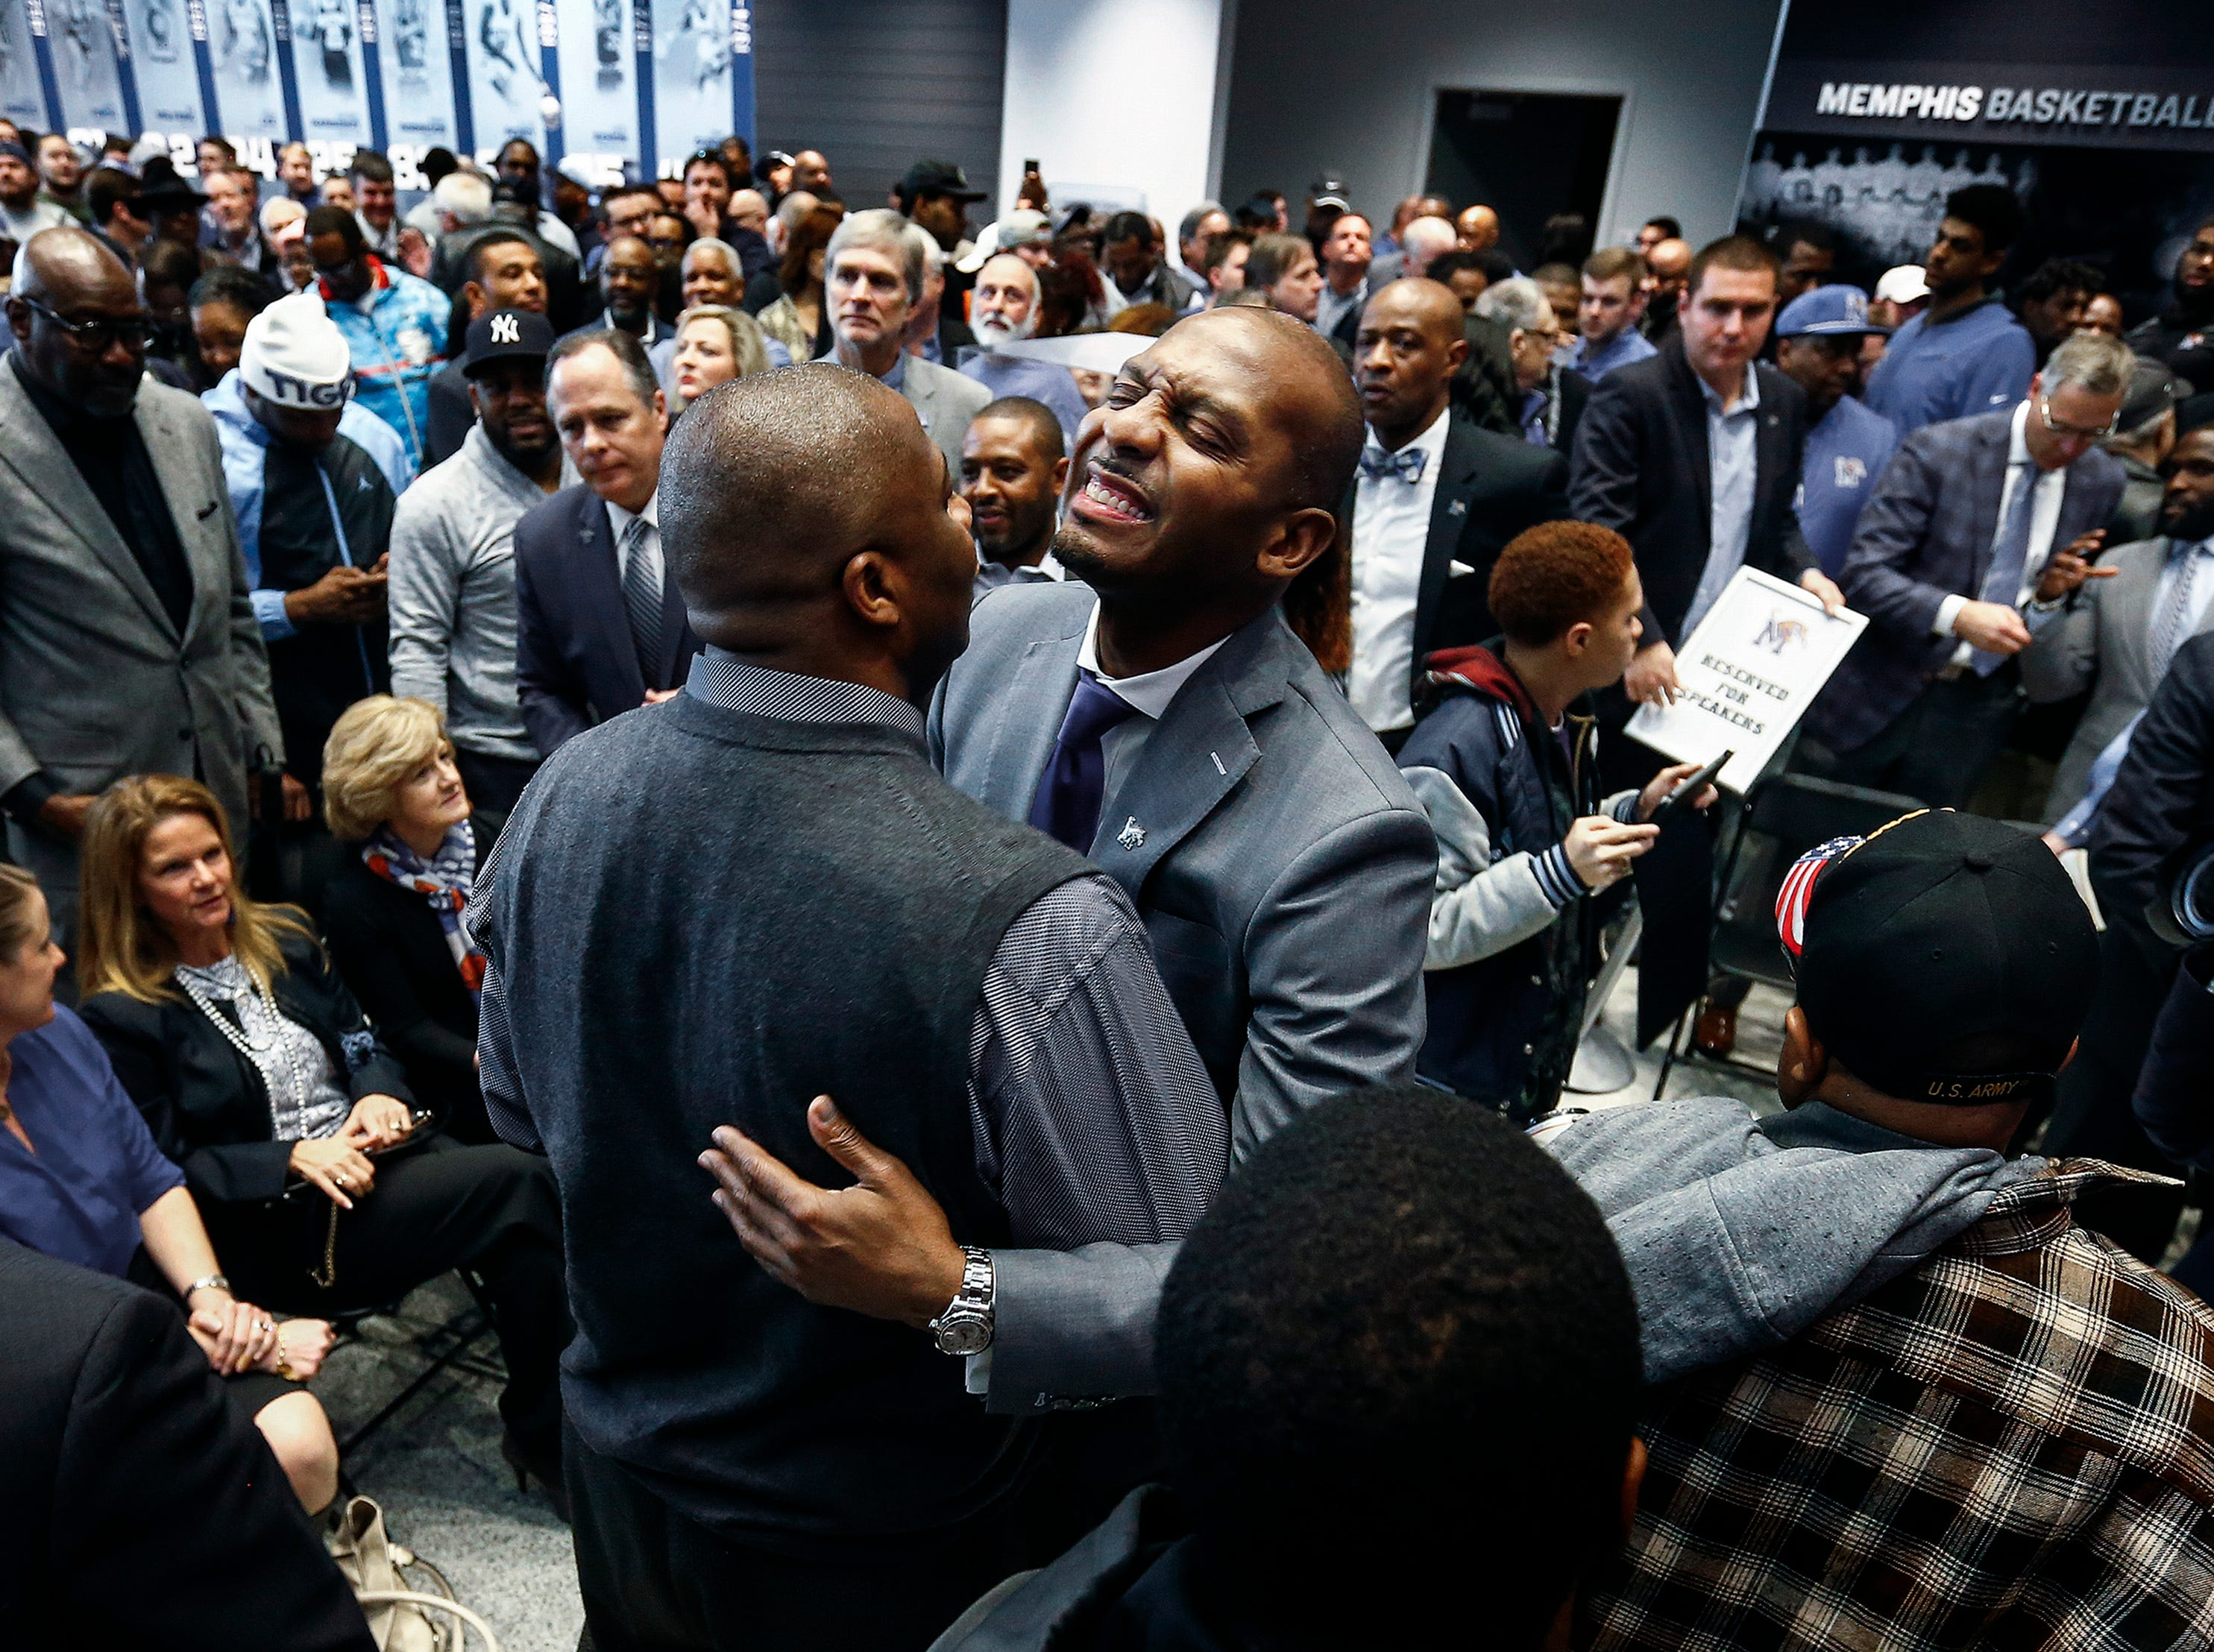 """Anfernee """"Penny"""" Hardaway smiles while getting hugs from Tigers fans after introduced as the University of Memphis' new head basketball coach at the Laurie-Walton Family Basketball Center Tuesday morning. Hardaway, who a standout player at the U of M from 91-93, will take over for recently fired head coach Tubby Smith."""